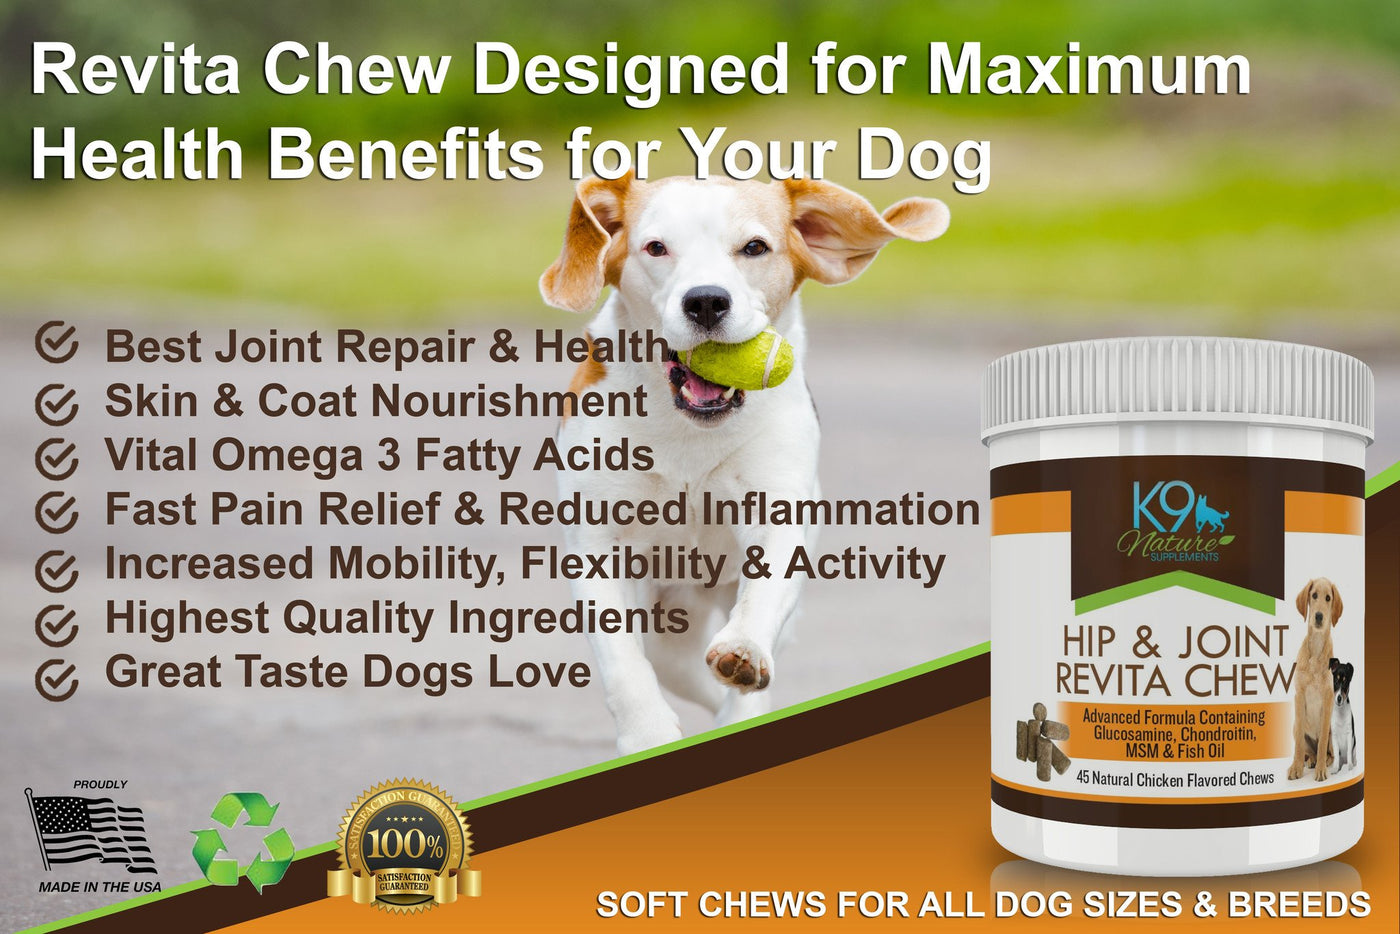 Hip & Joint Revita Chews 15% Off